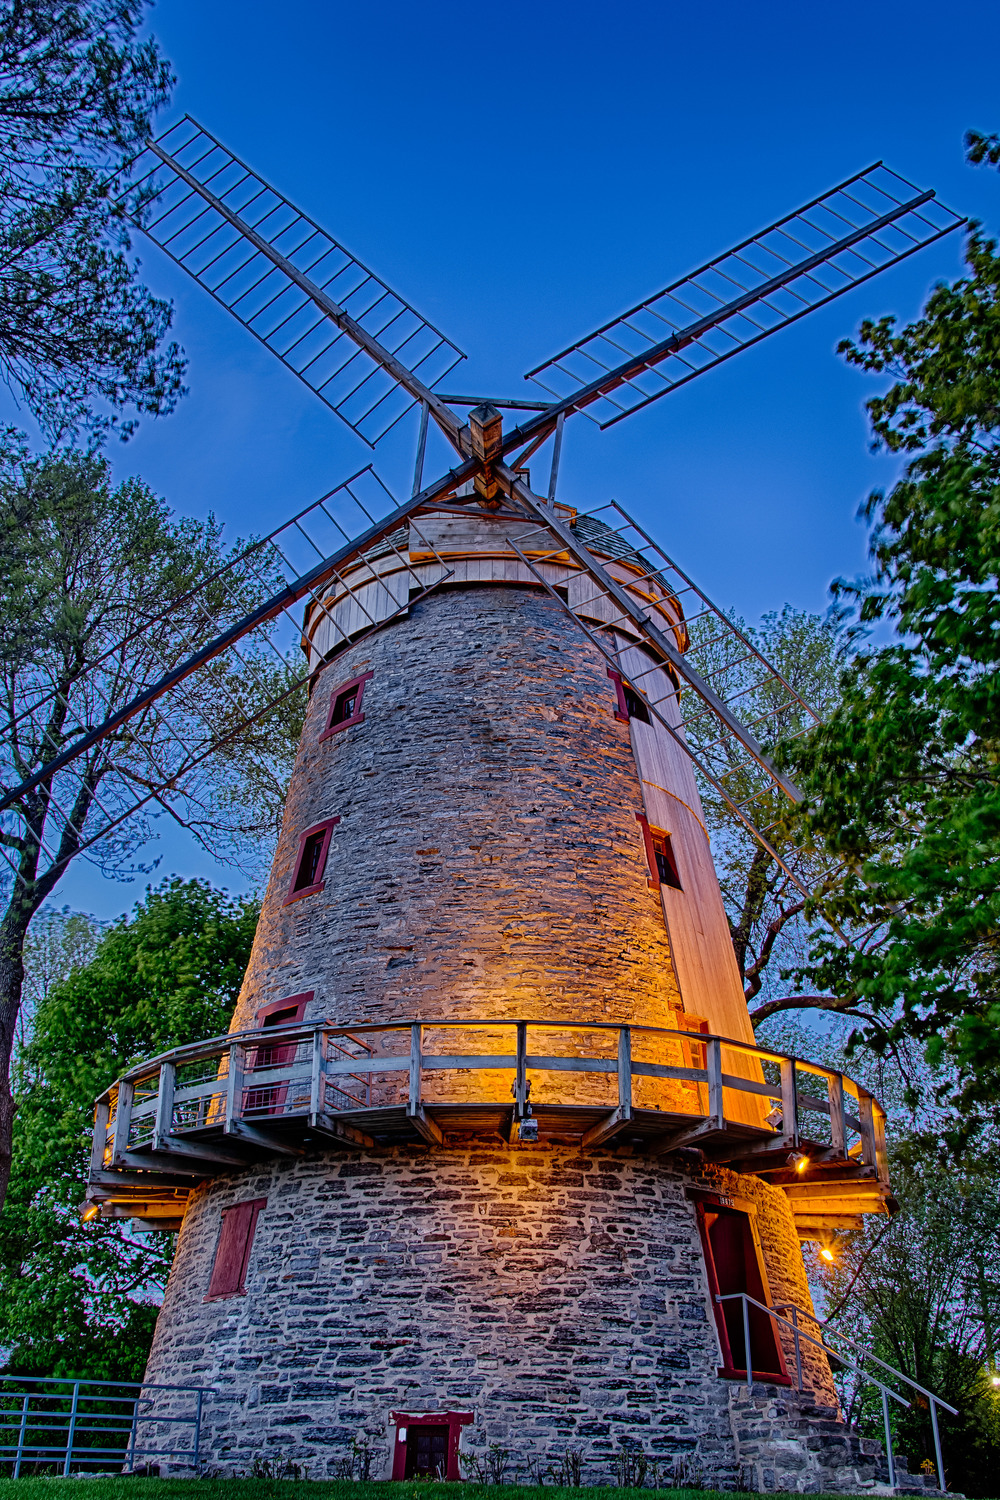 20140518_Windmill in Lachine_IMG_4113_HDR-M.jpg